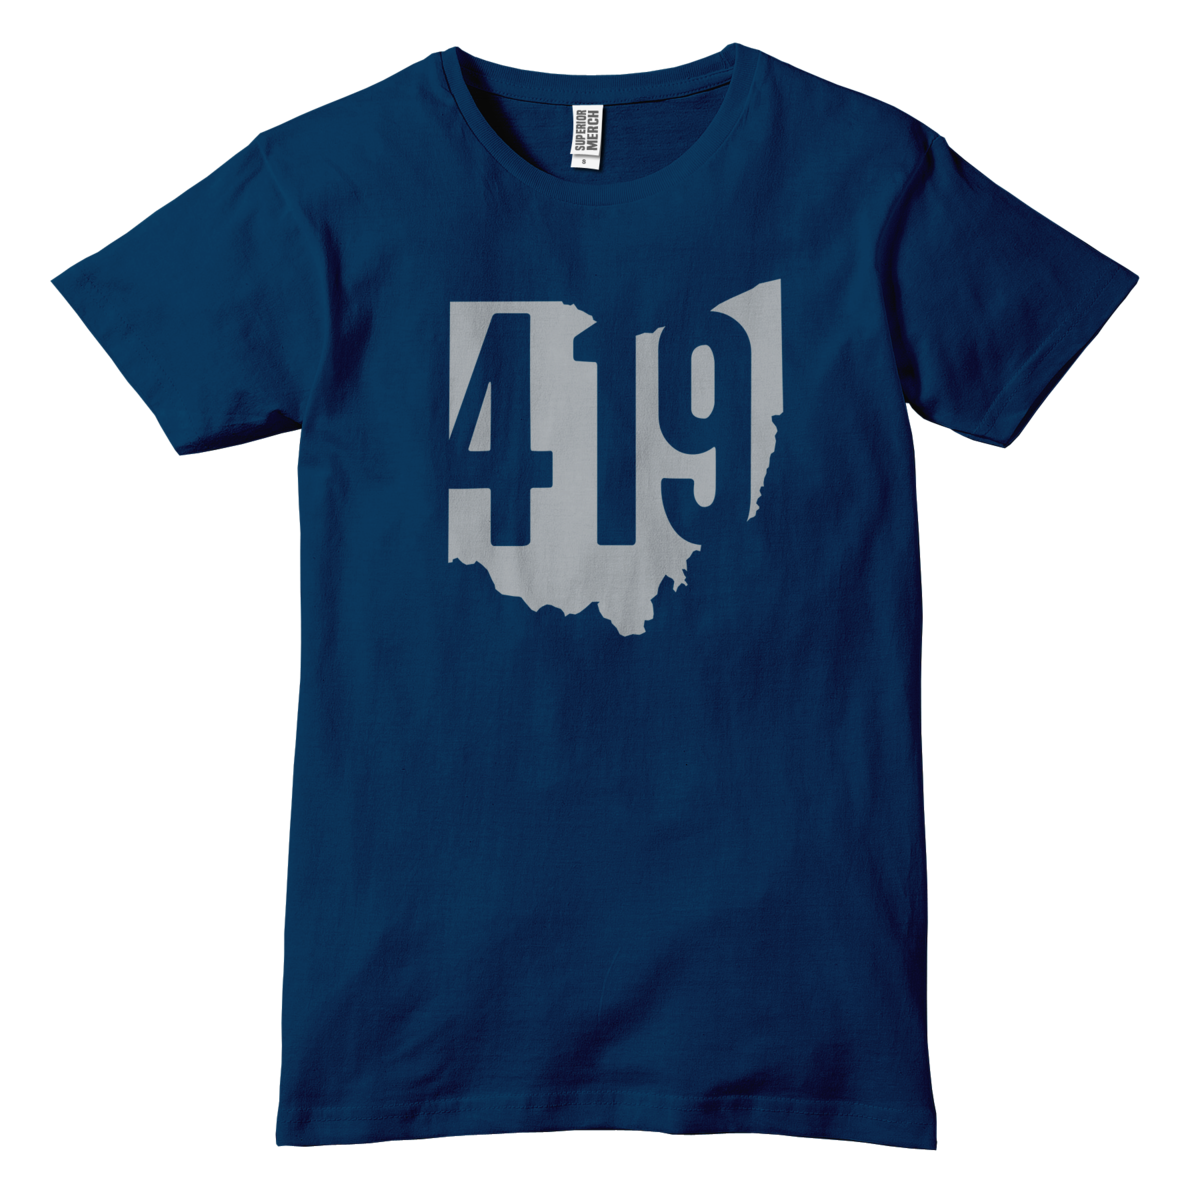 419 Ohio Area Code T-Shirt